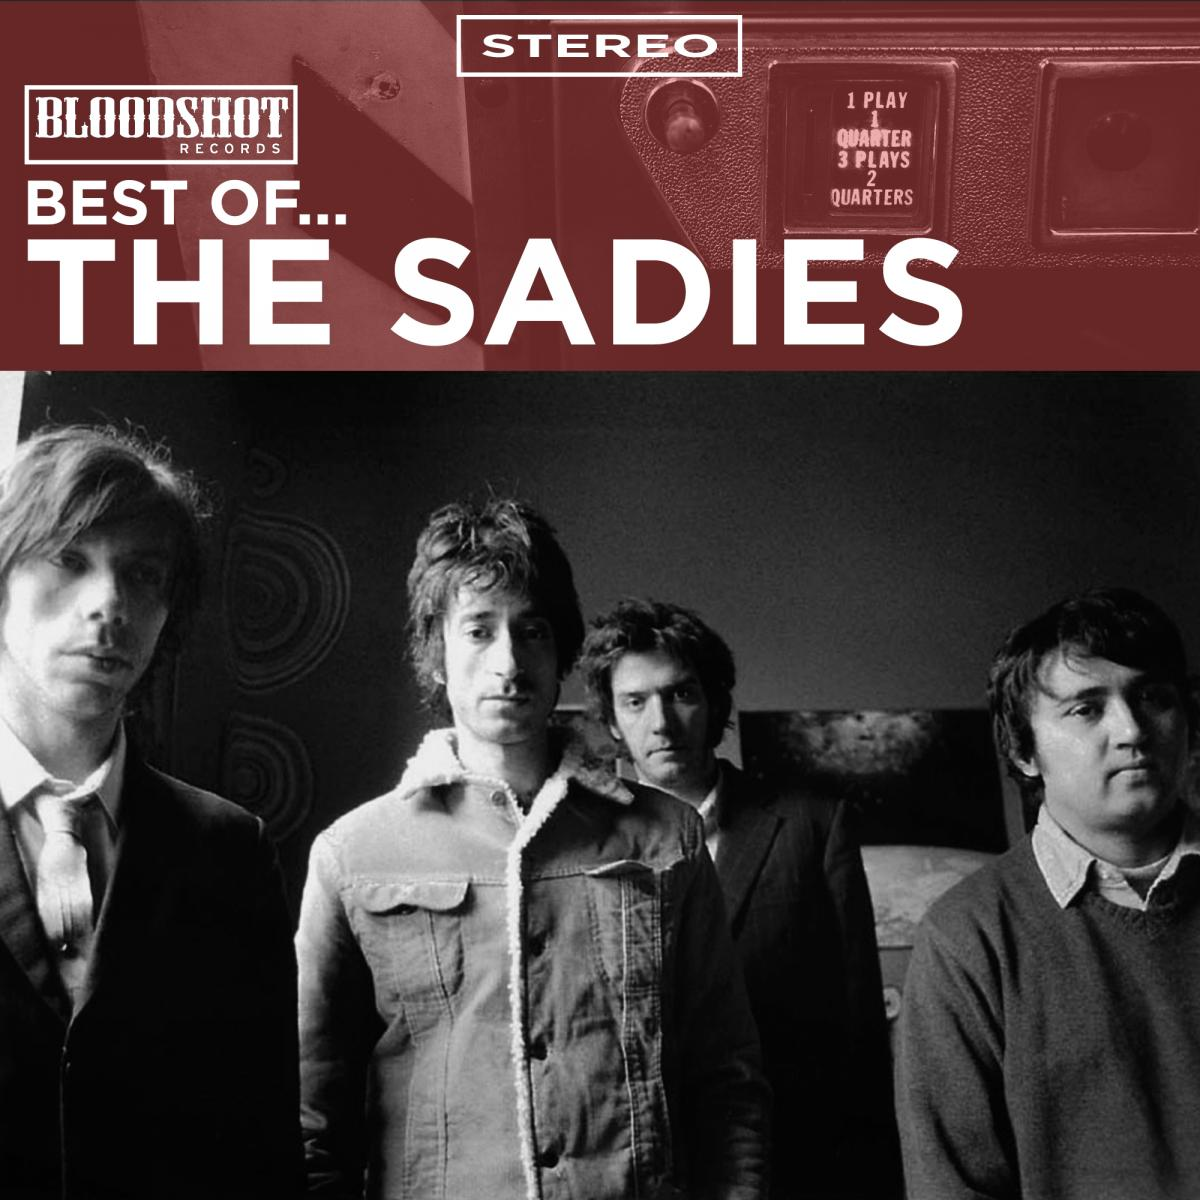 Best of the Sadies Bloodshot Records